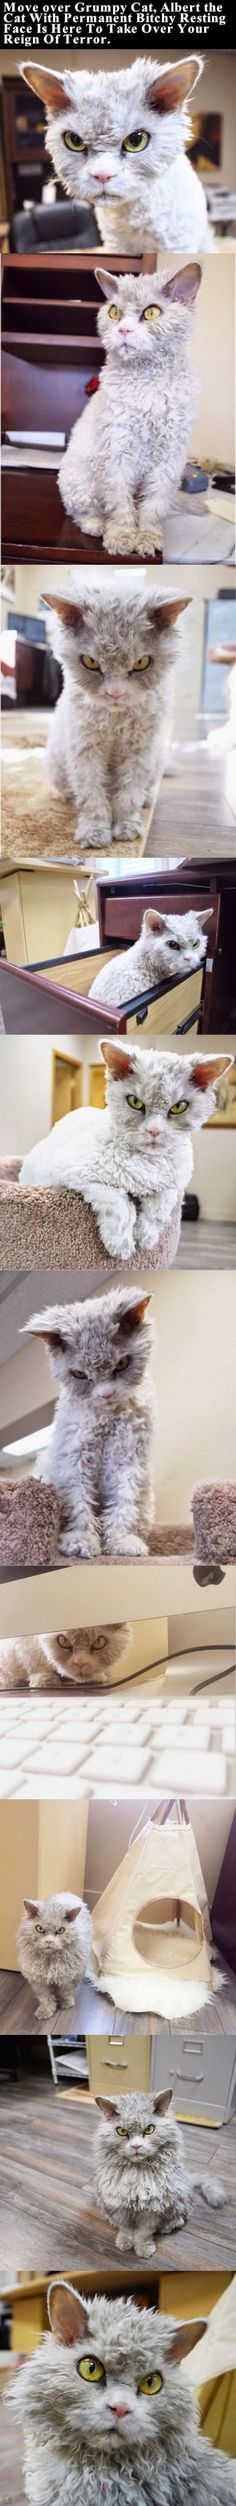 Move over Grumpy Cat, Albert the Cat With Permanent Bitchy Resting Face is here to take over your reign of terror cute animals cat cats adorable animal kittens pets lol kitten humor funny pictures funny animals funny cats